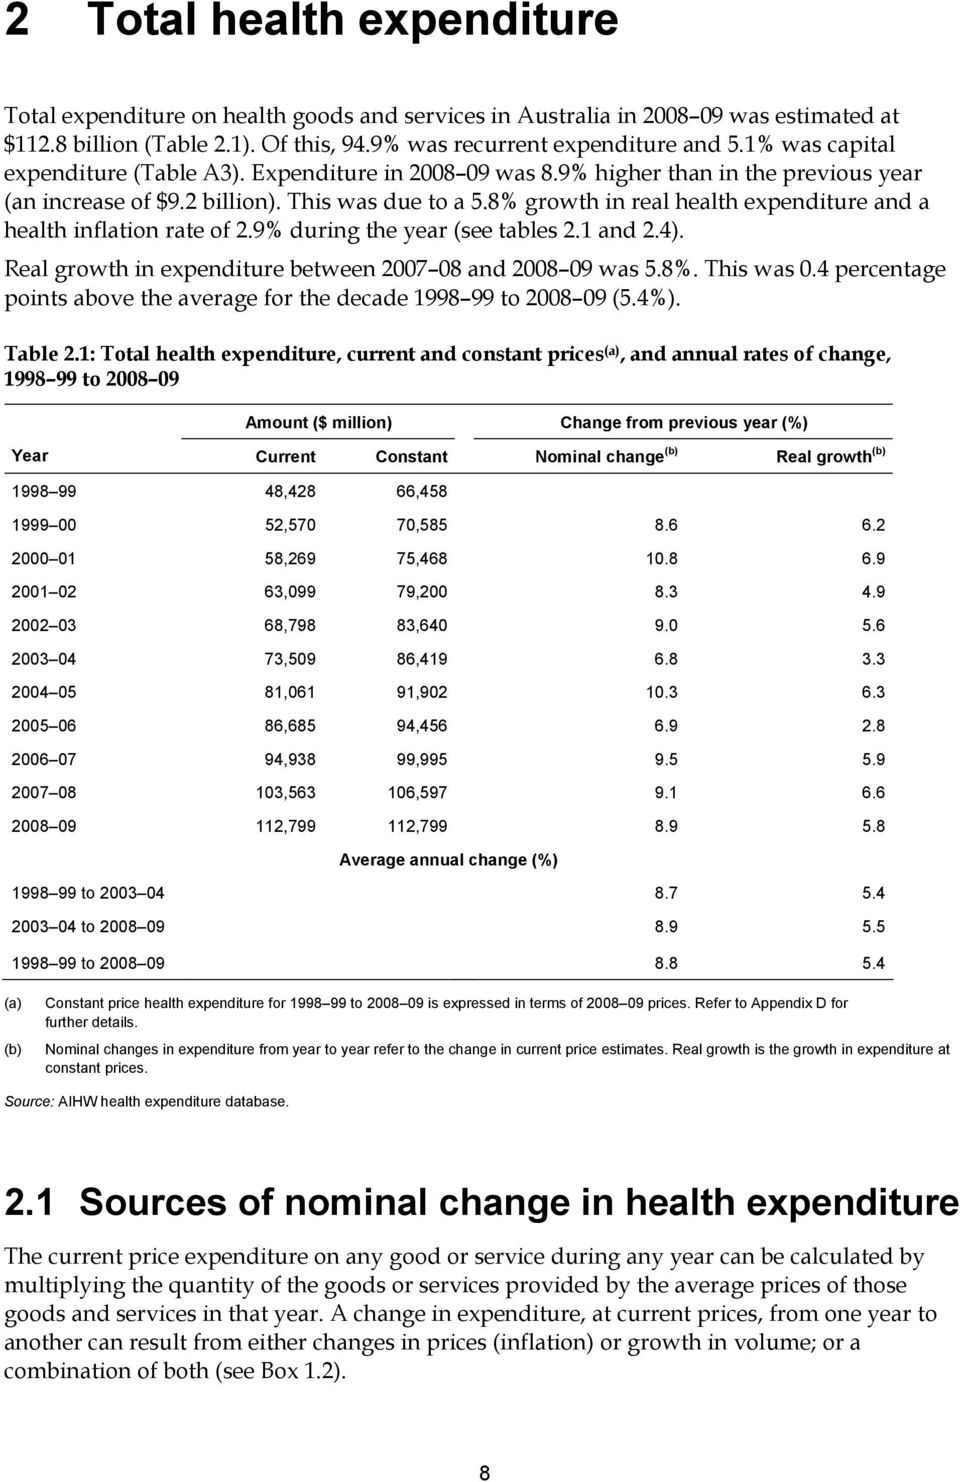 8% growth in real health expenditure and a health inflation rate of 2.9% during the year (see tables 2.1 and 2.4). Real growth in expenditure between 2007 08 and 2008 09 was 5.8%. This was 0.